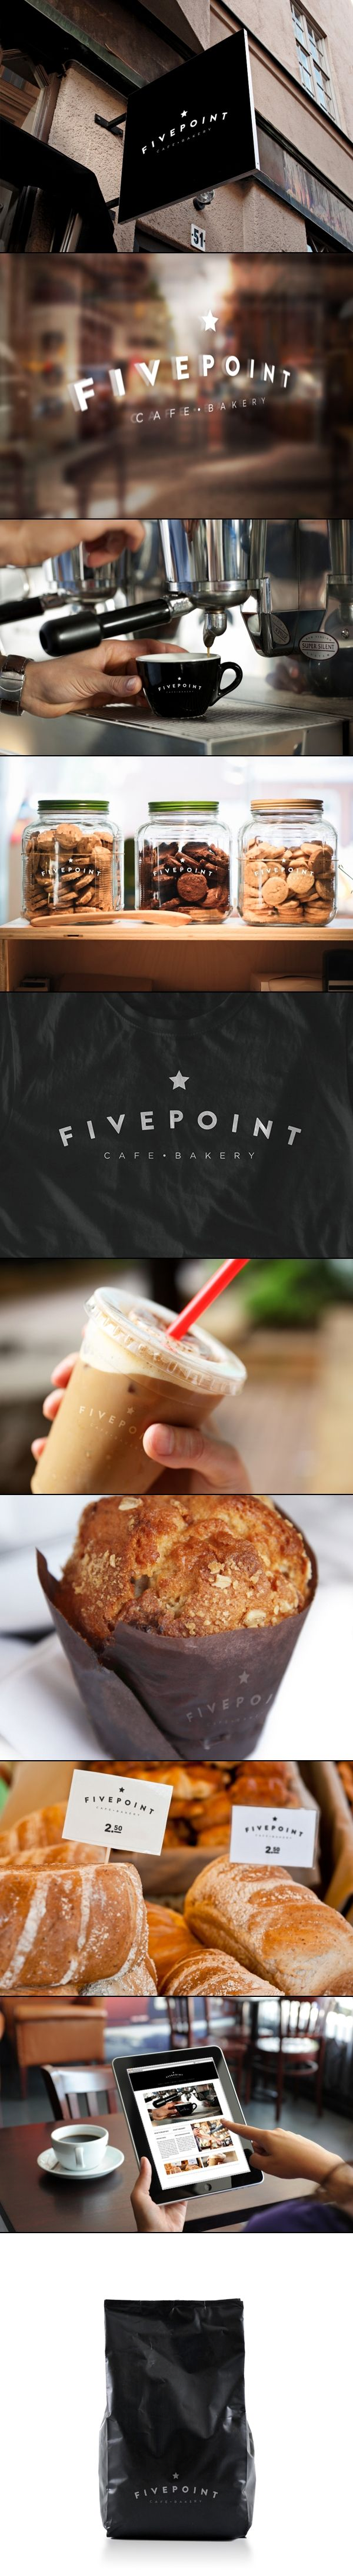 Fivepoint Cafe & Bakery | Matt Ivory. let's take a snack break #identity #packaging #branding PD